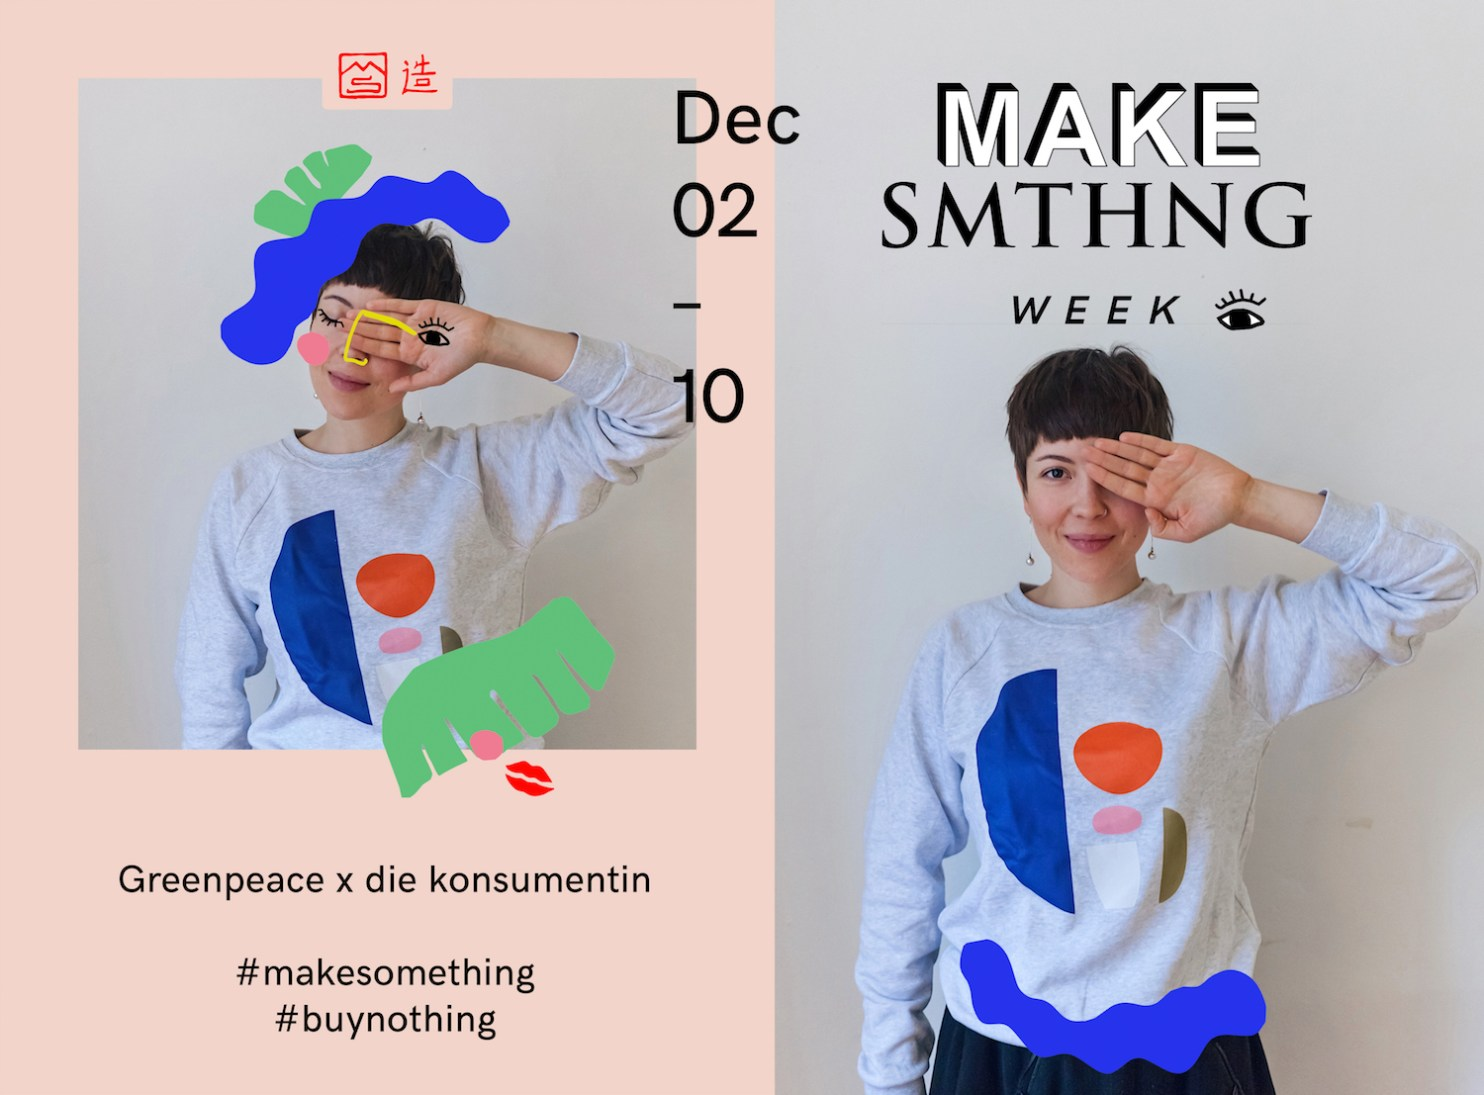 MAKE SMTHNG WEEK – against Black Friday, Cyber Monday, Cyber Monday and Consumerism